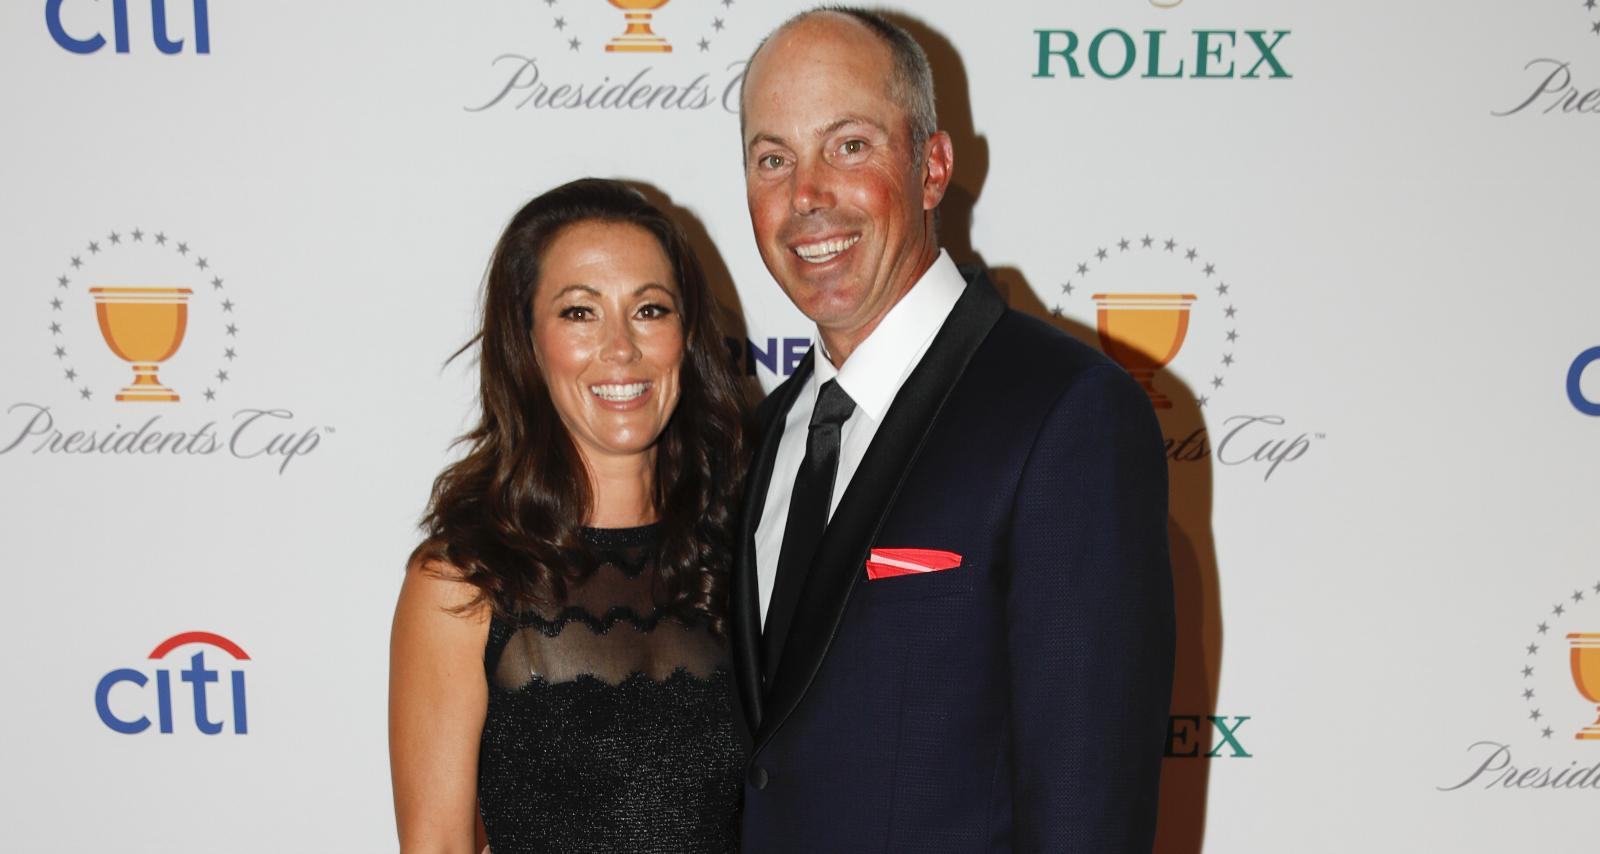 Sybi Kuchar Wiki, Age, Family, Early Life, Kids, Education, Tennis and Facts about Matt Kuchar's Wife